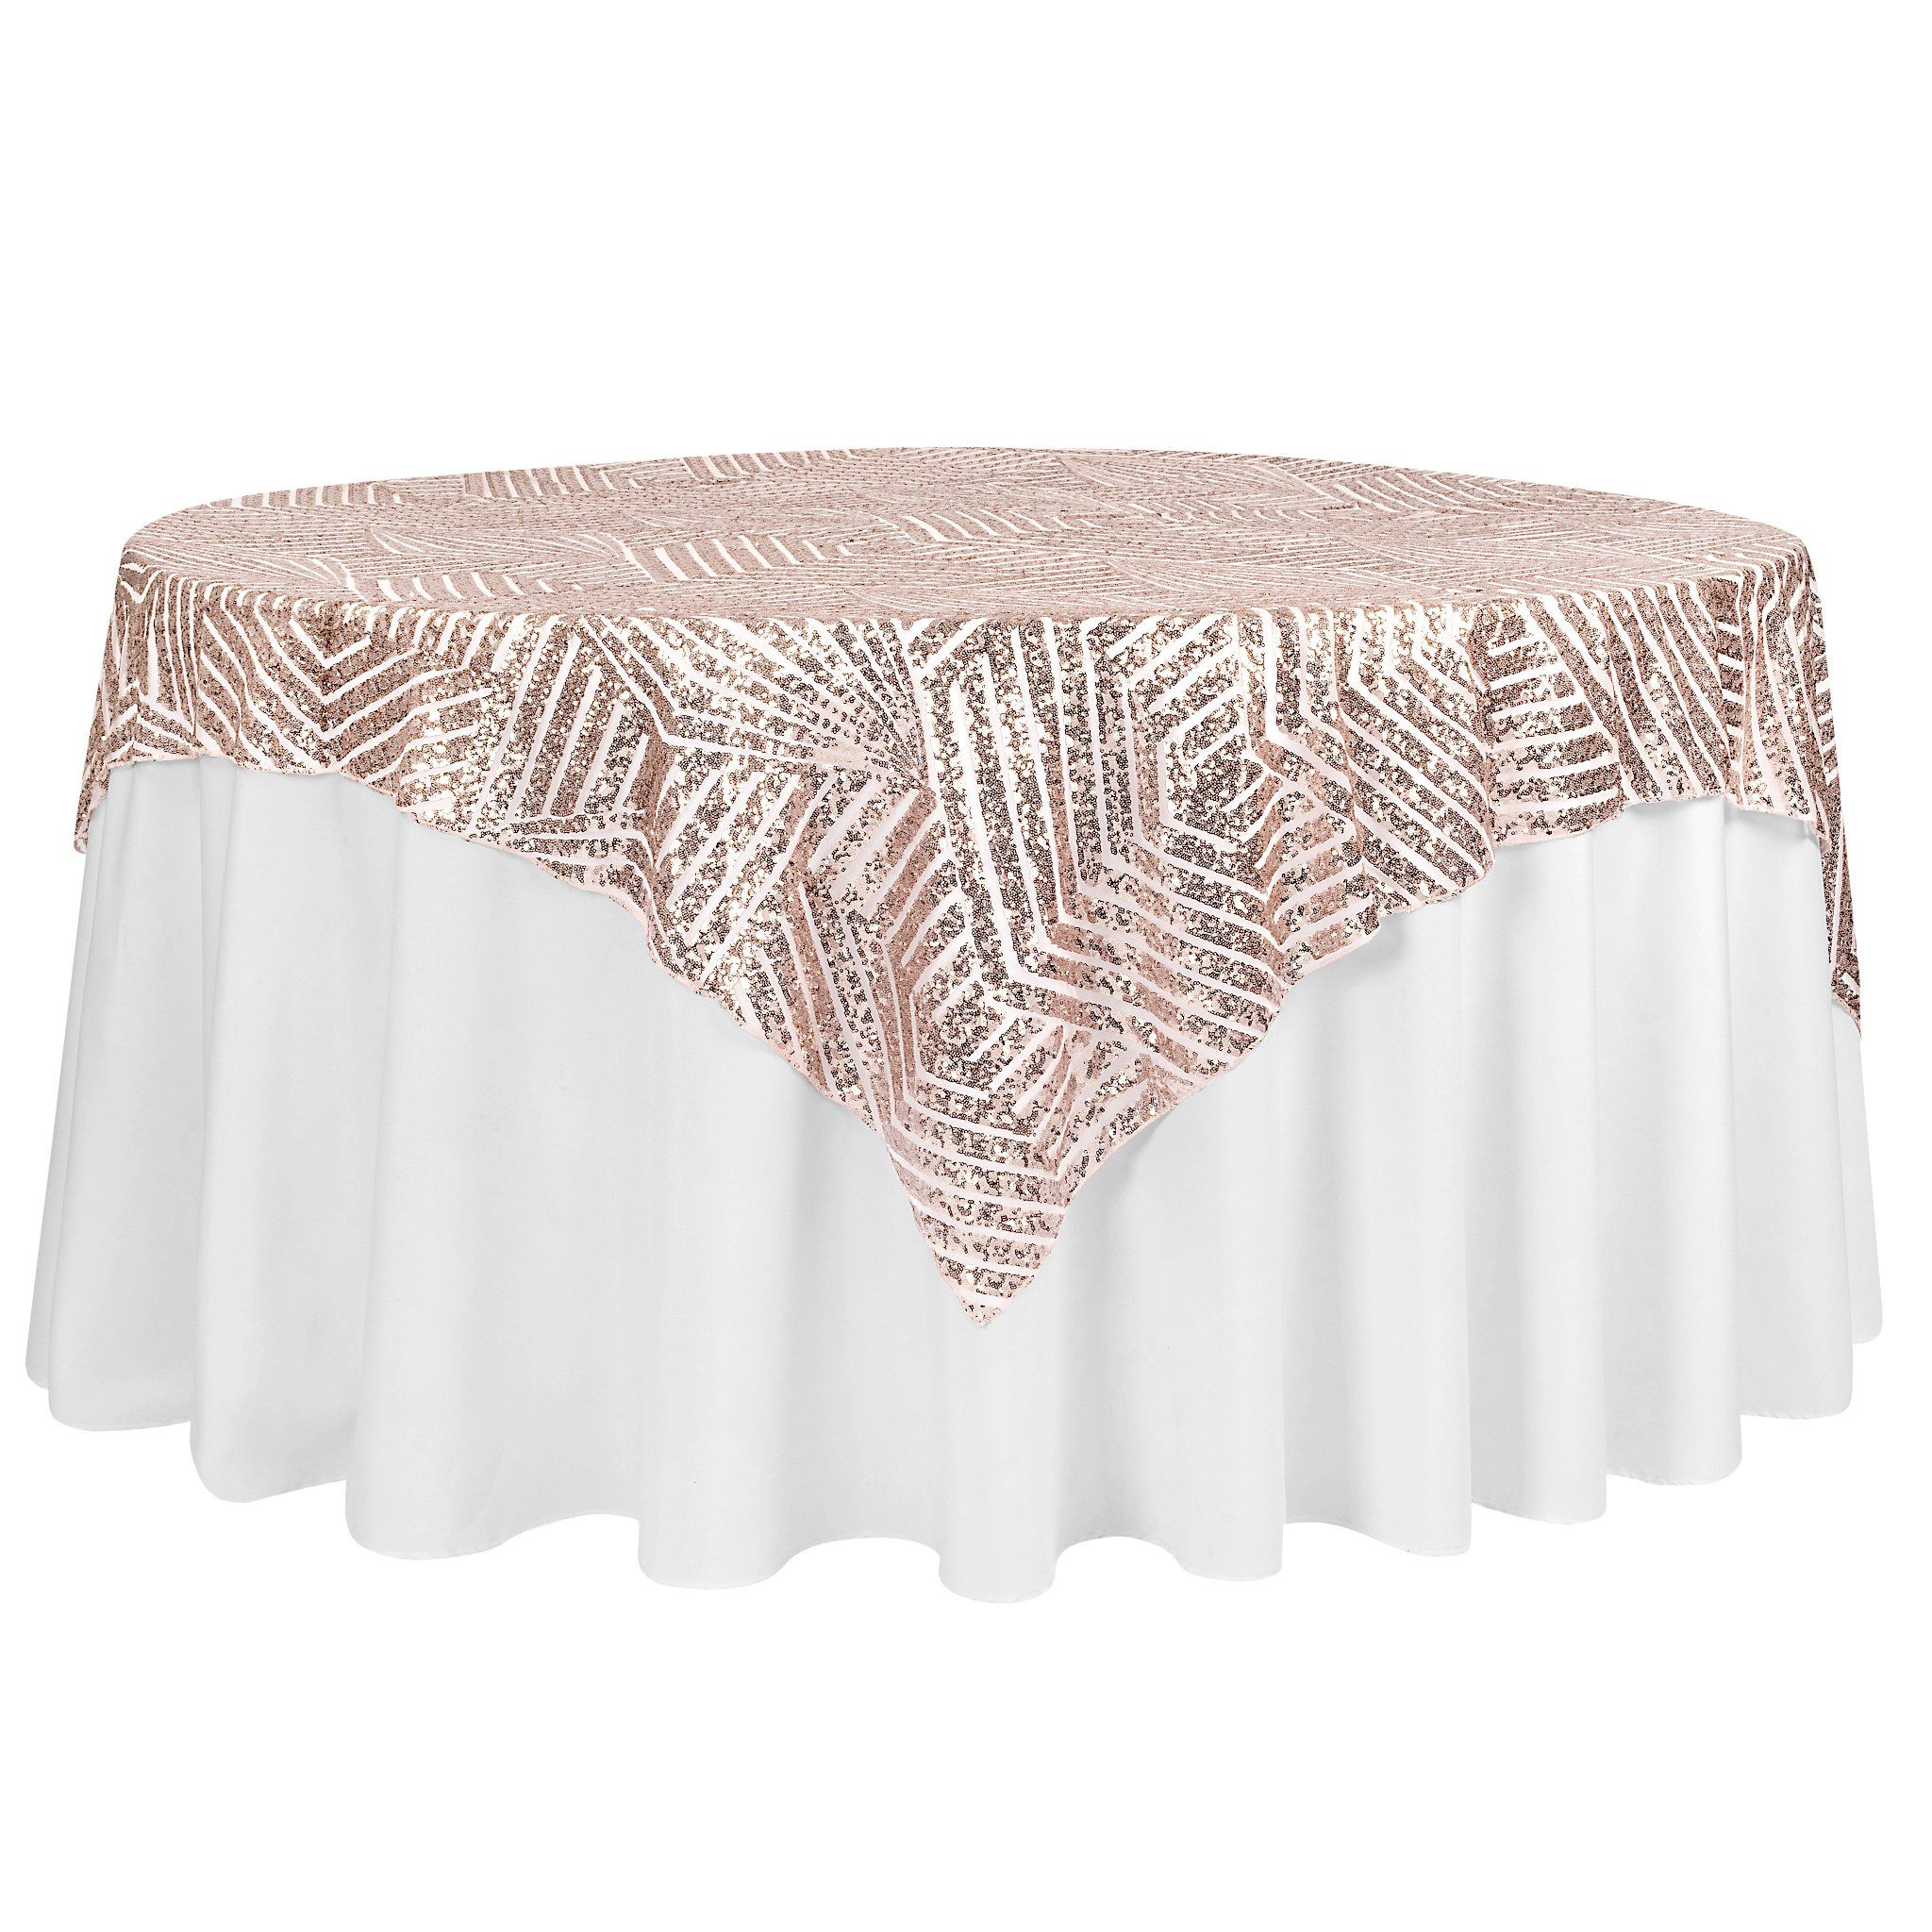 Geometric Glitz Art Deco Sequin Table Overlay Topper 72 X72 Square Blush Rose Gold In 2020 Sequin Table Event Decor Direct Table Overlays